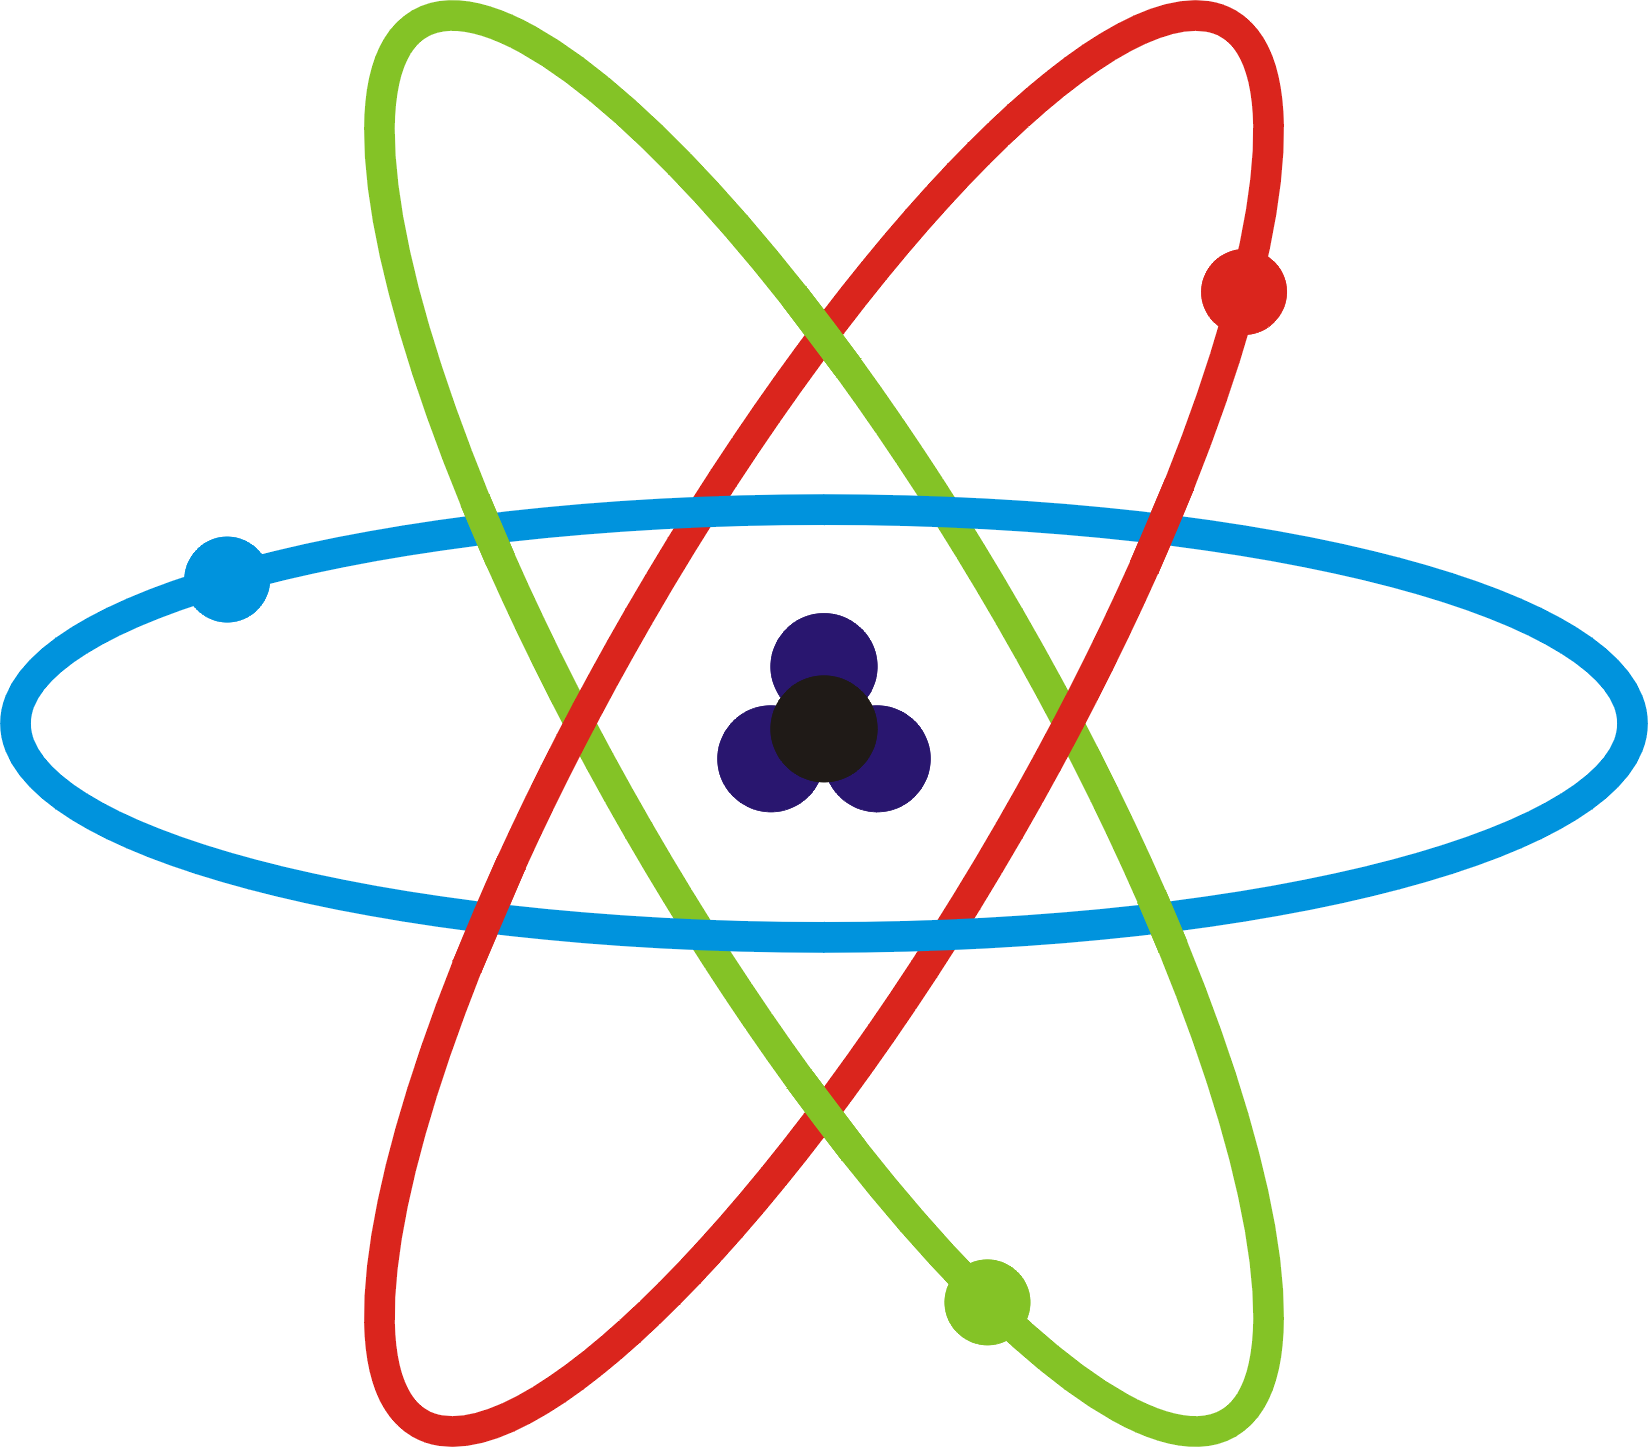 (http://upload.wikimedia.org/wikipedia/commons/f/fb/Schematicky_atom.png)